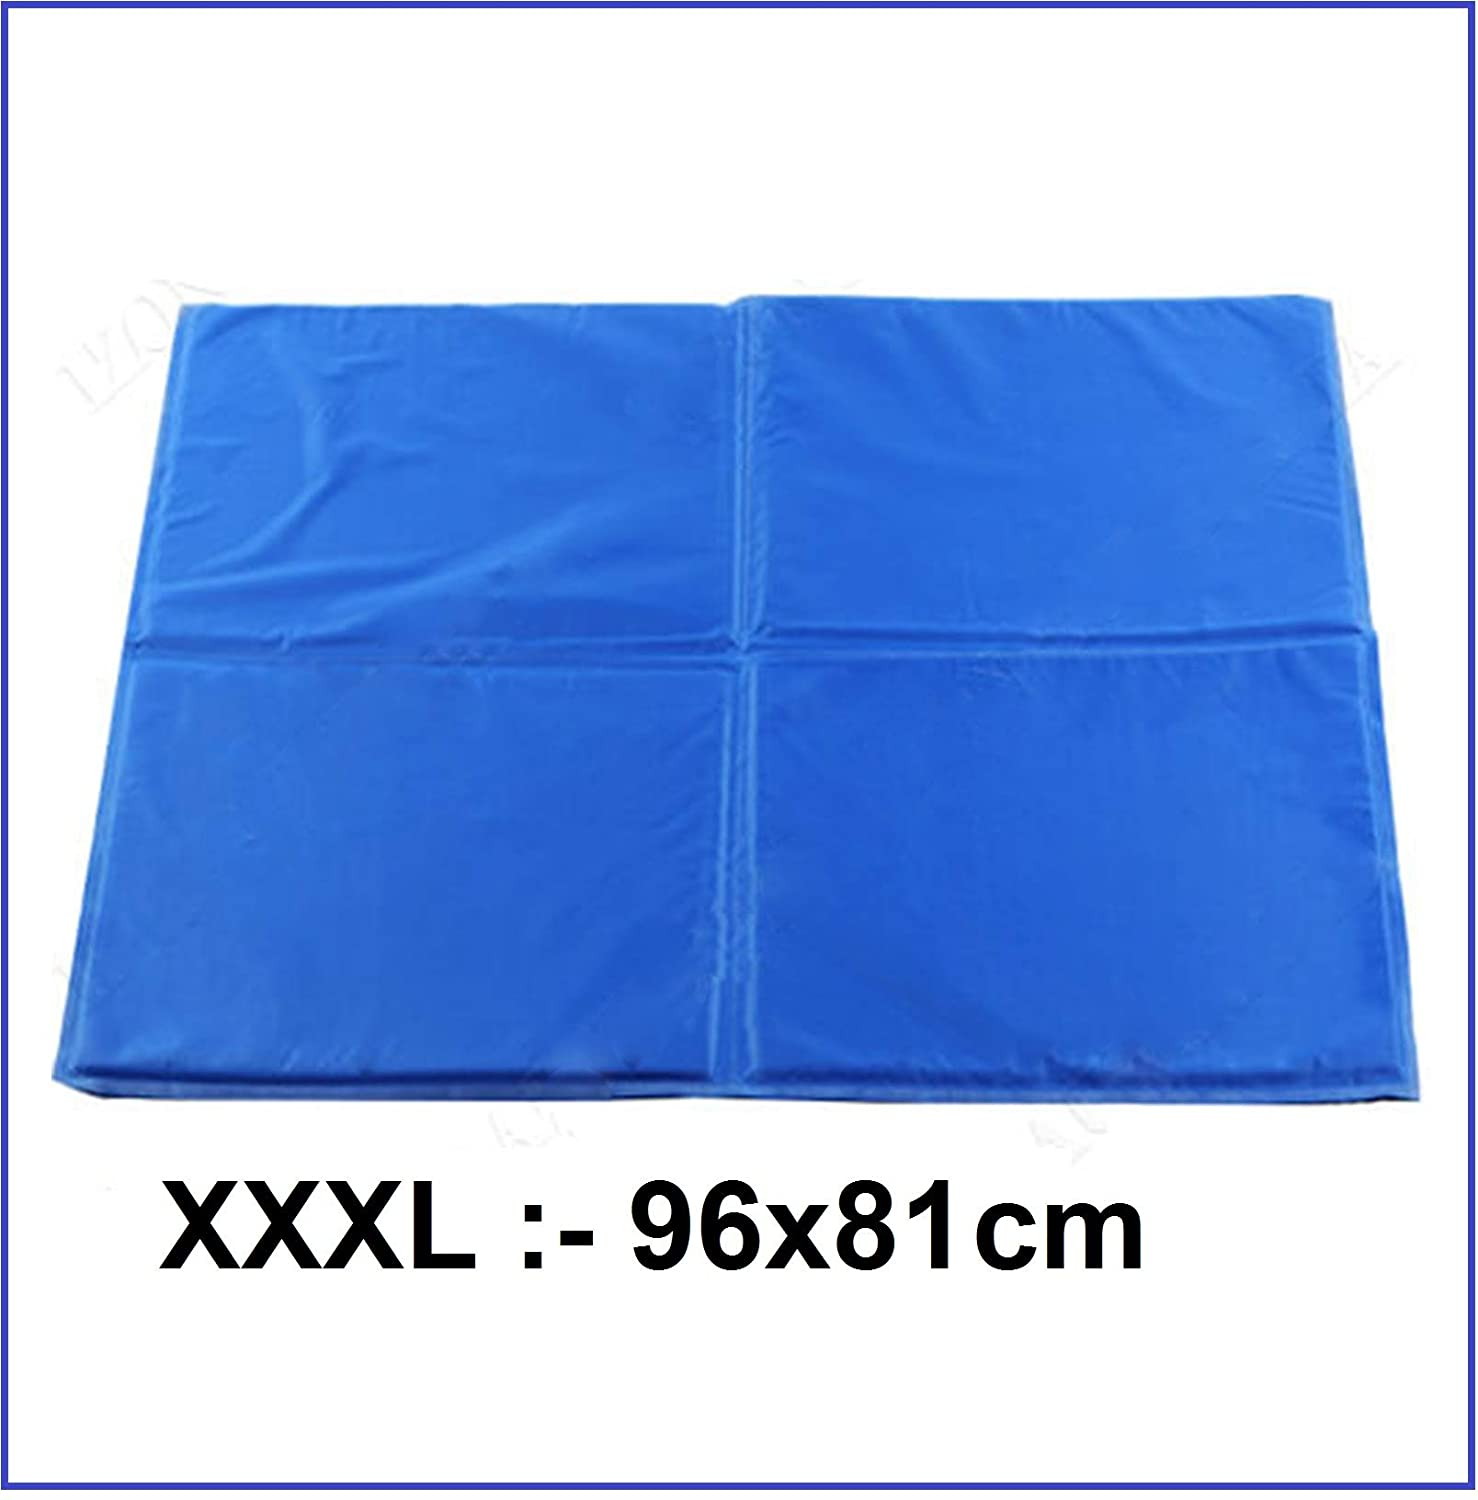 (XXXL) [9681] Large Dog Cooling Mat (bluee)   Keeps Your Larger Pets Cool & Calm During Summer   Non Toxic Cooling Pads for Dogs and Cats ((XXXL) [96  81])